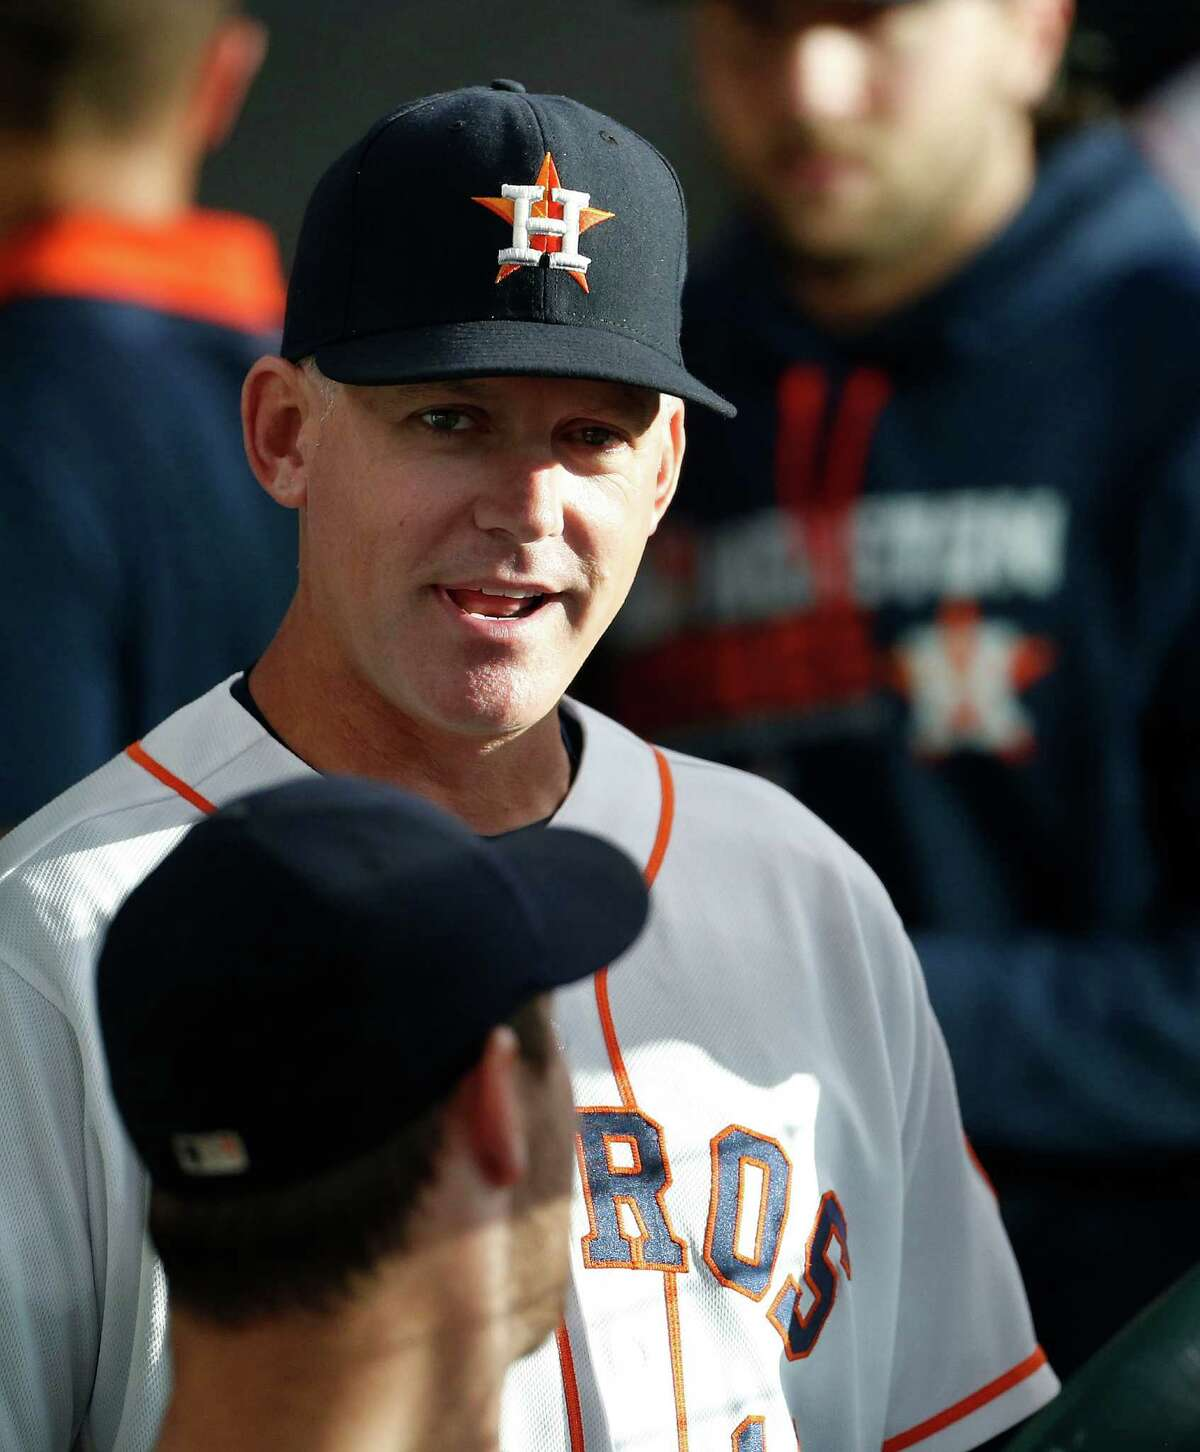 A.J. Hinch's approval rating Approve: 30 percent Disapprove: 8 percent Not sure: 62 percent